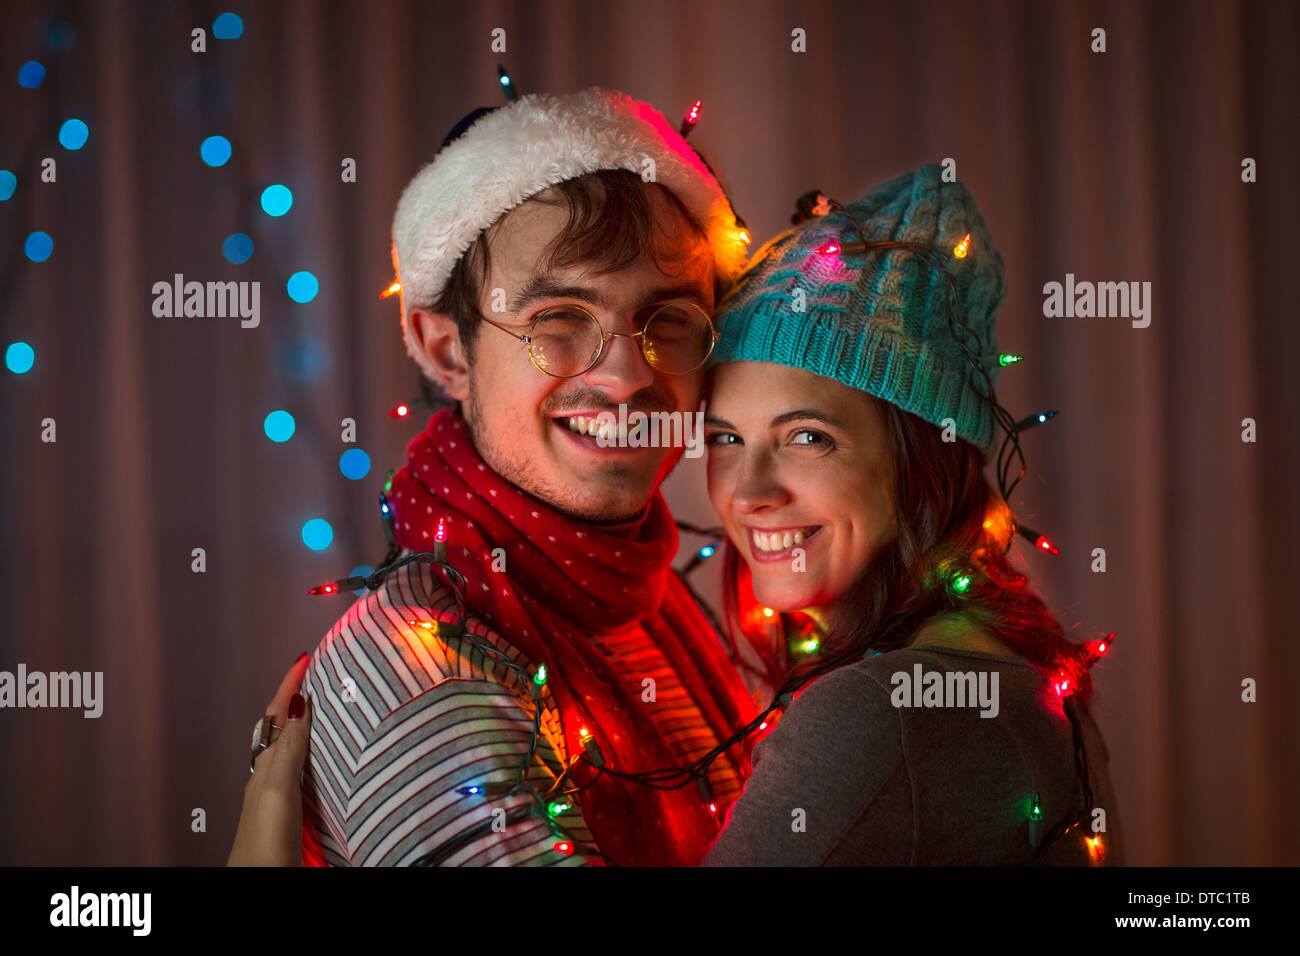 Young couple wrapped in decorative lights at christmas Stock Photo